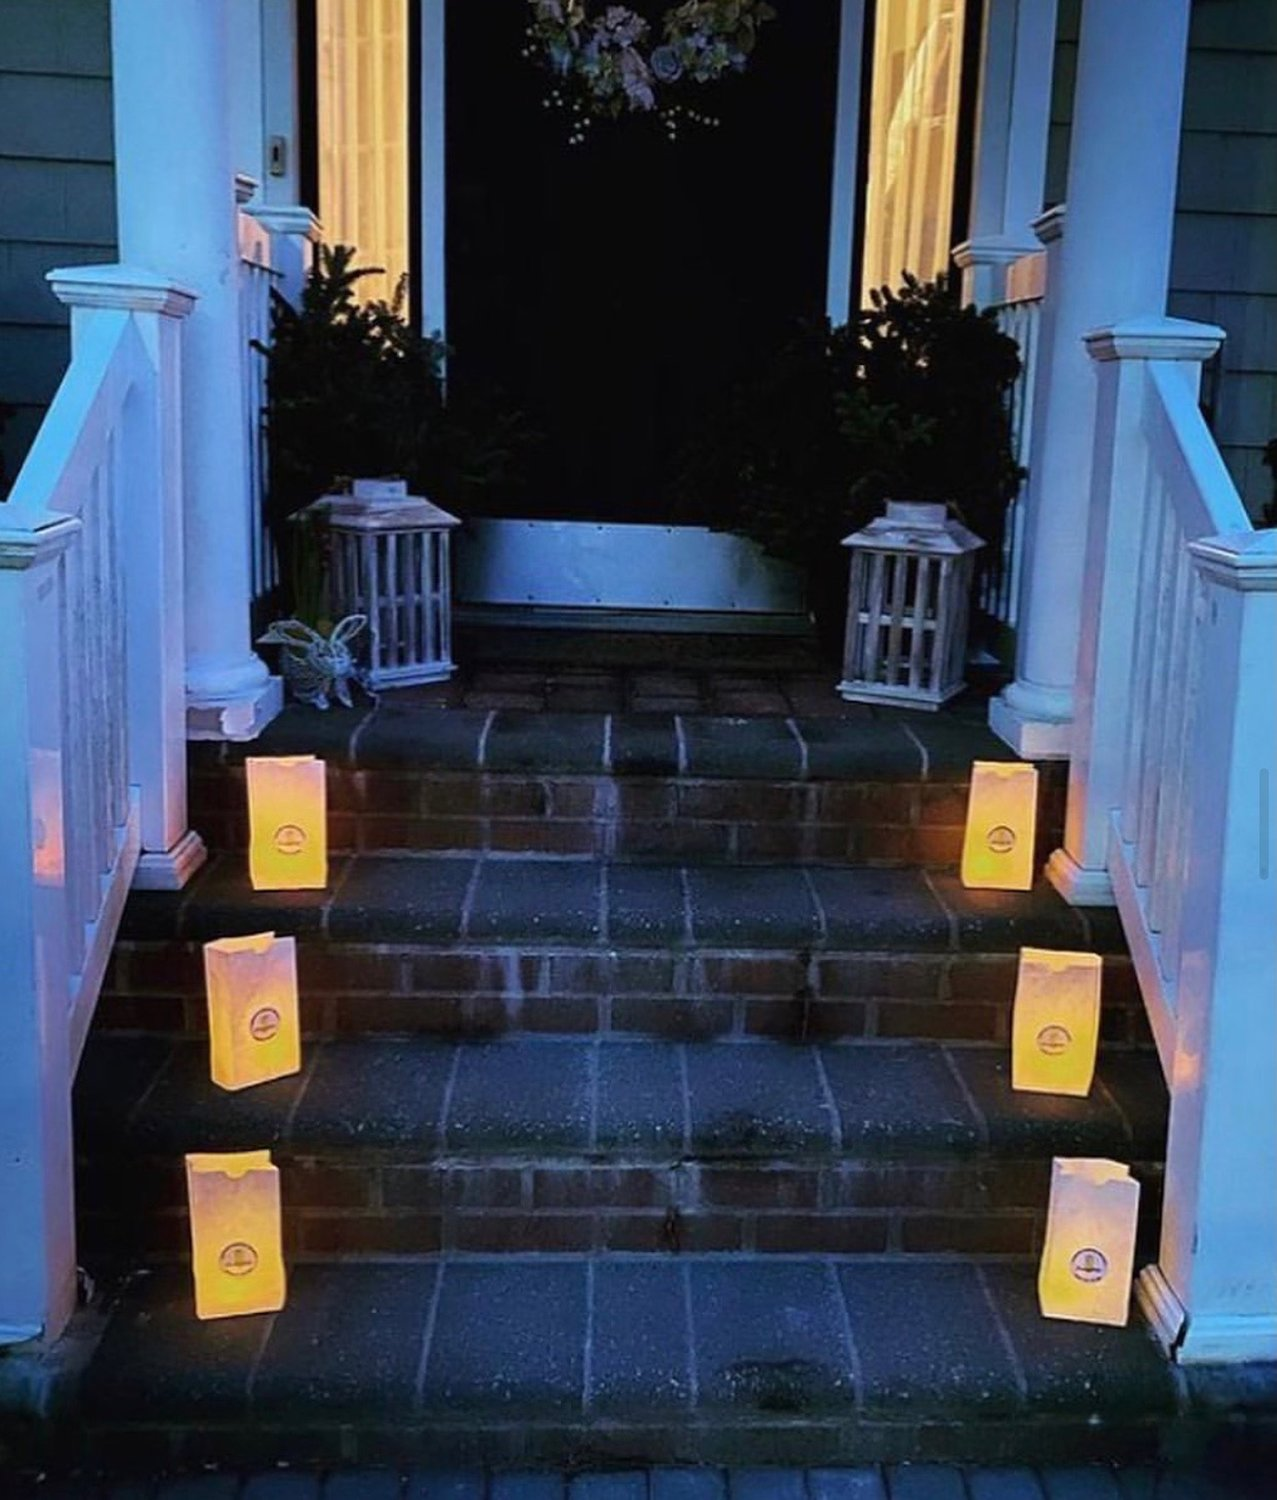 Community members placed luminary bags on their front porches in a show of support for seniors and to raise funds for them.